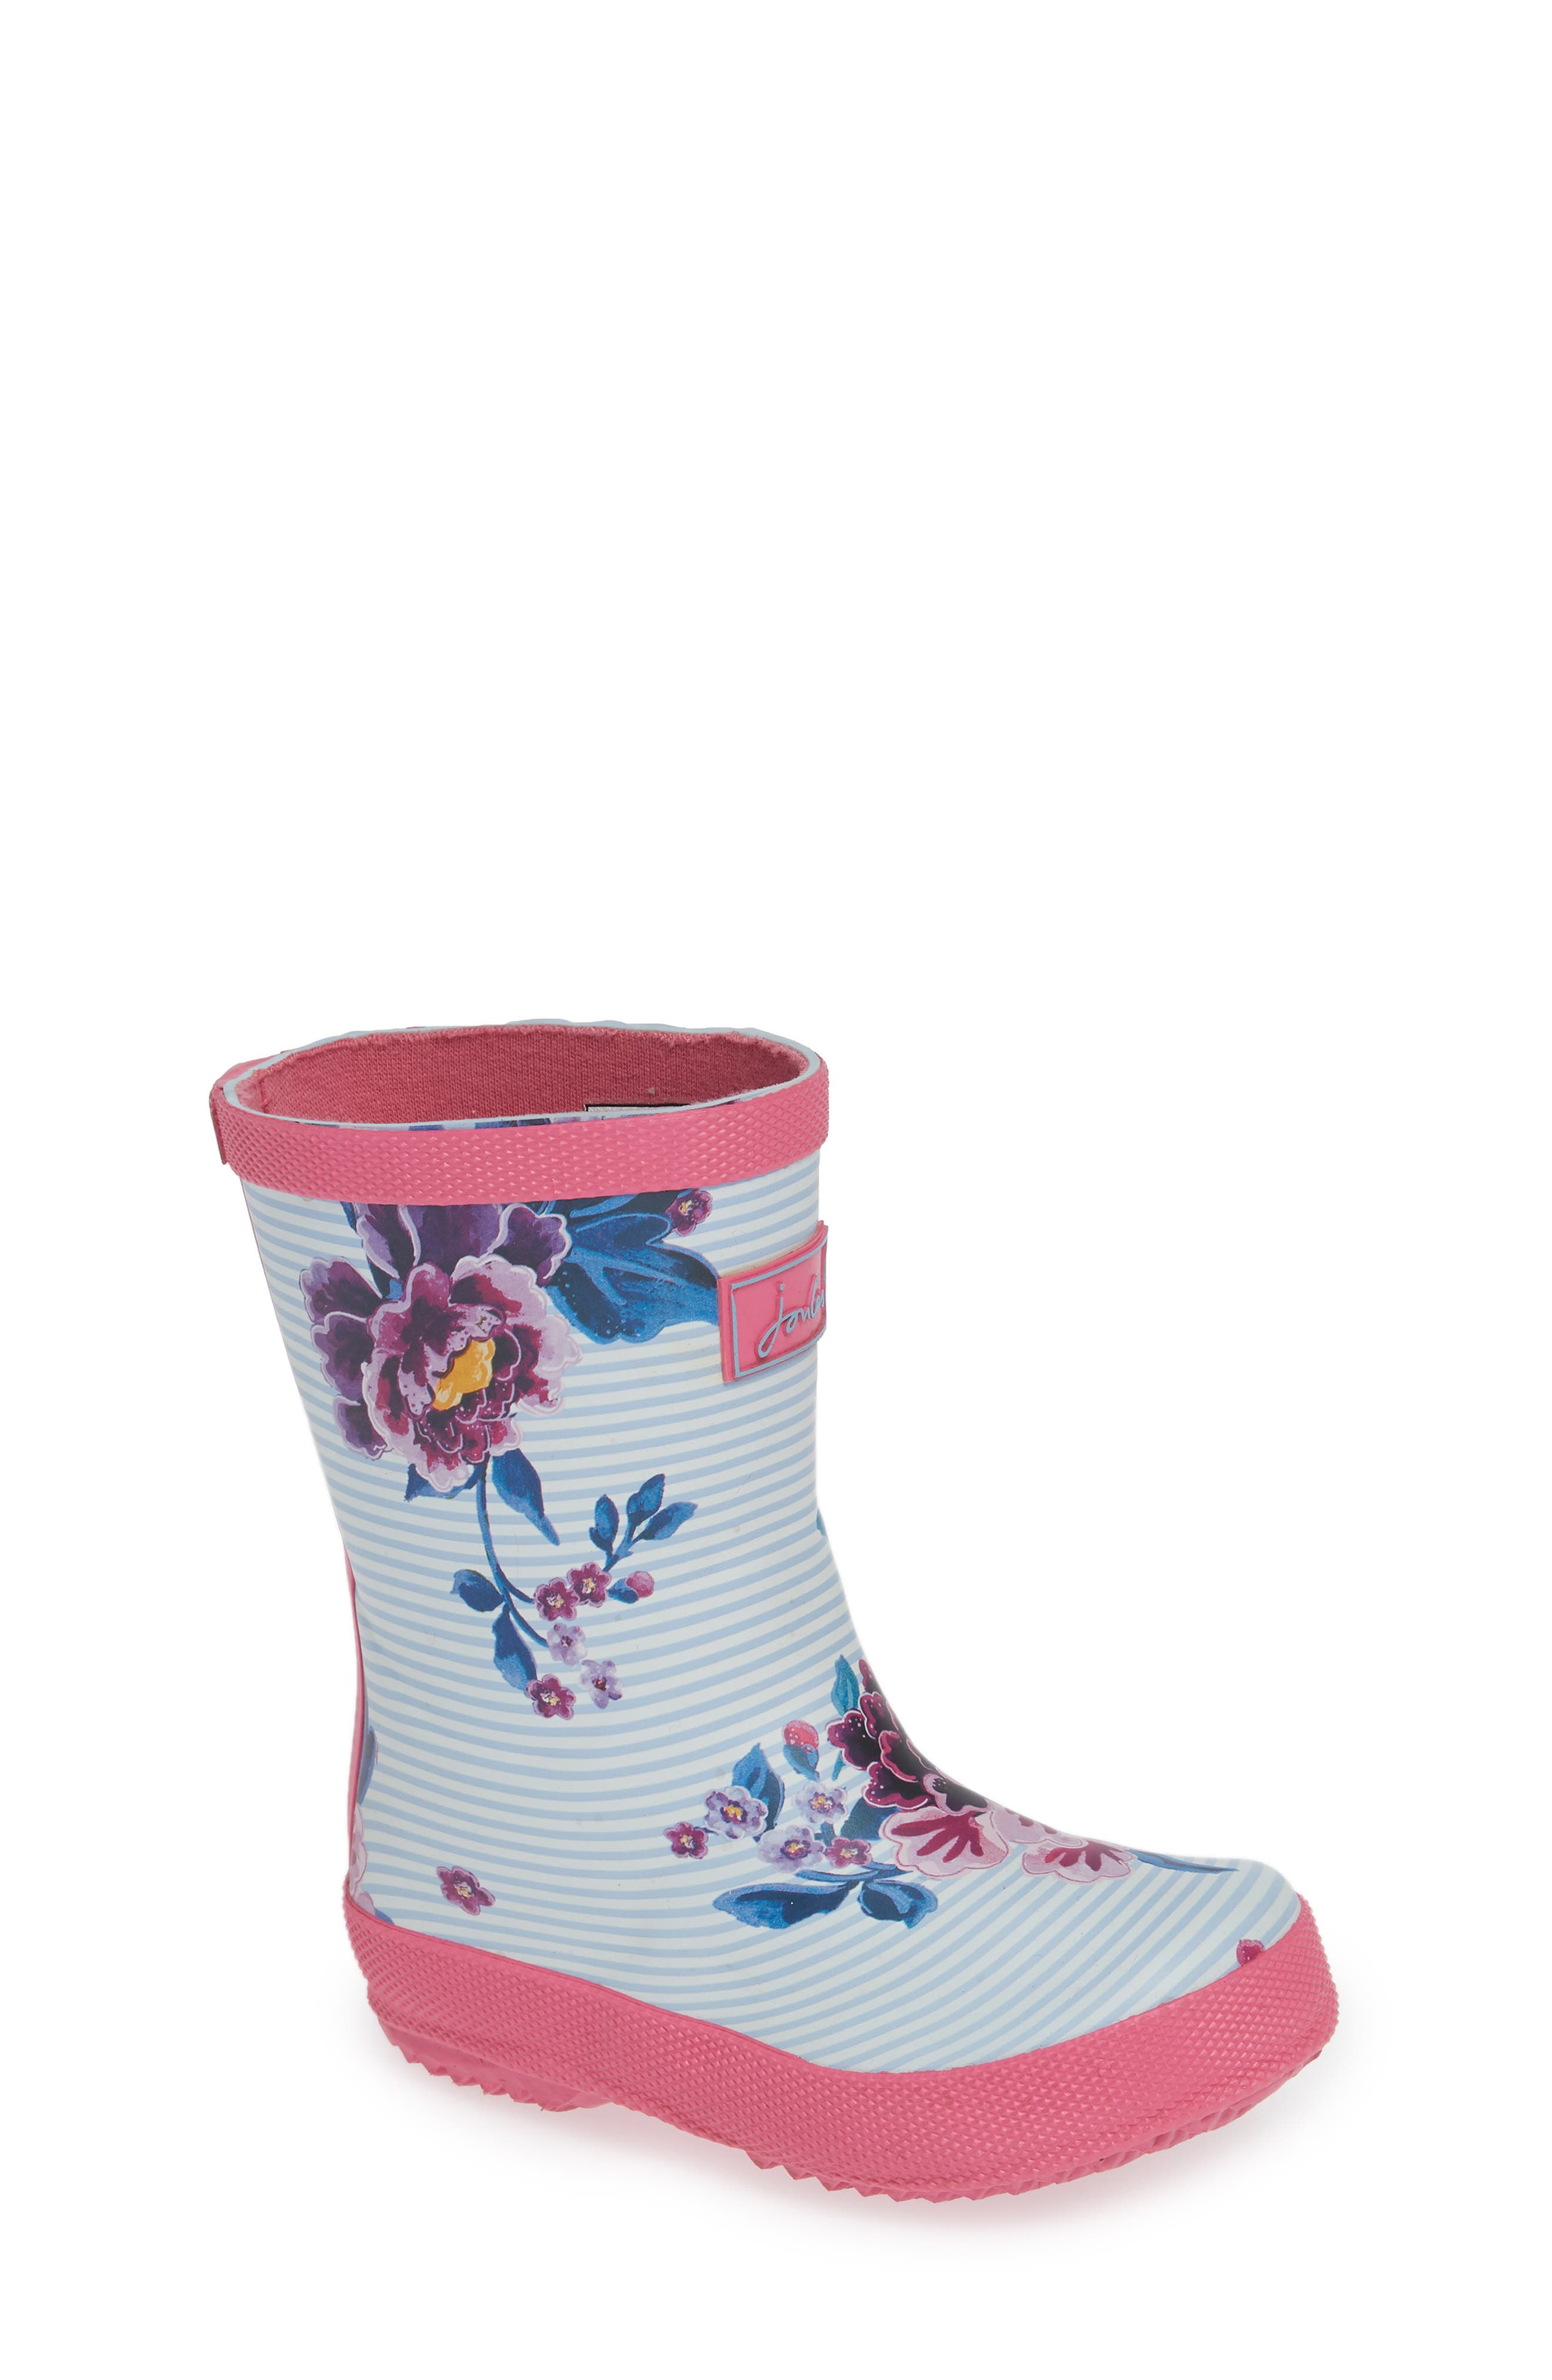 Baby Welly Print Waterproof Boot,                             Main thumbnail 1, color,                             Sky Blue Chinoiserie Floral